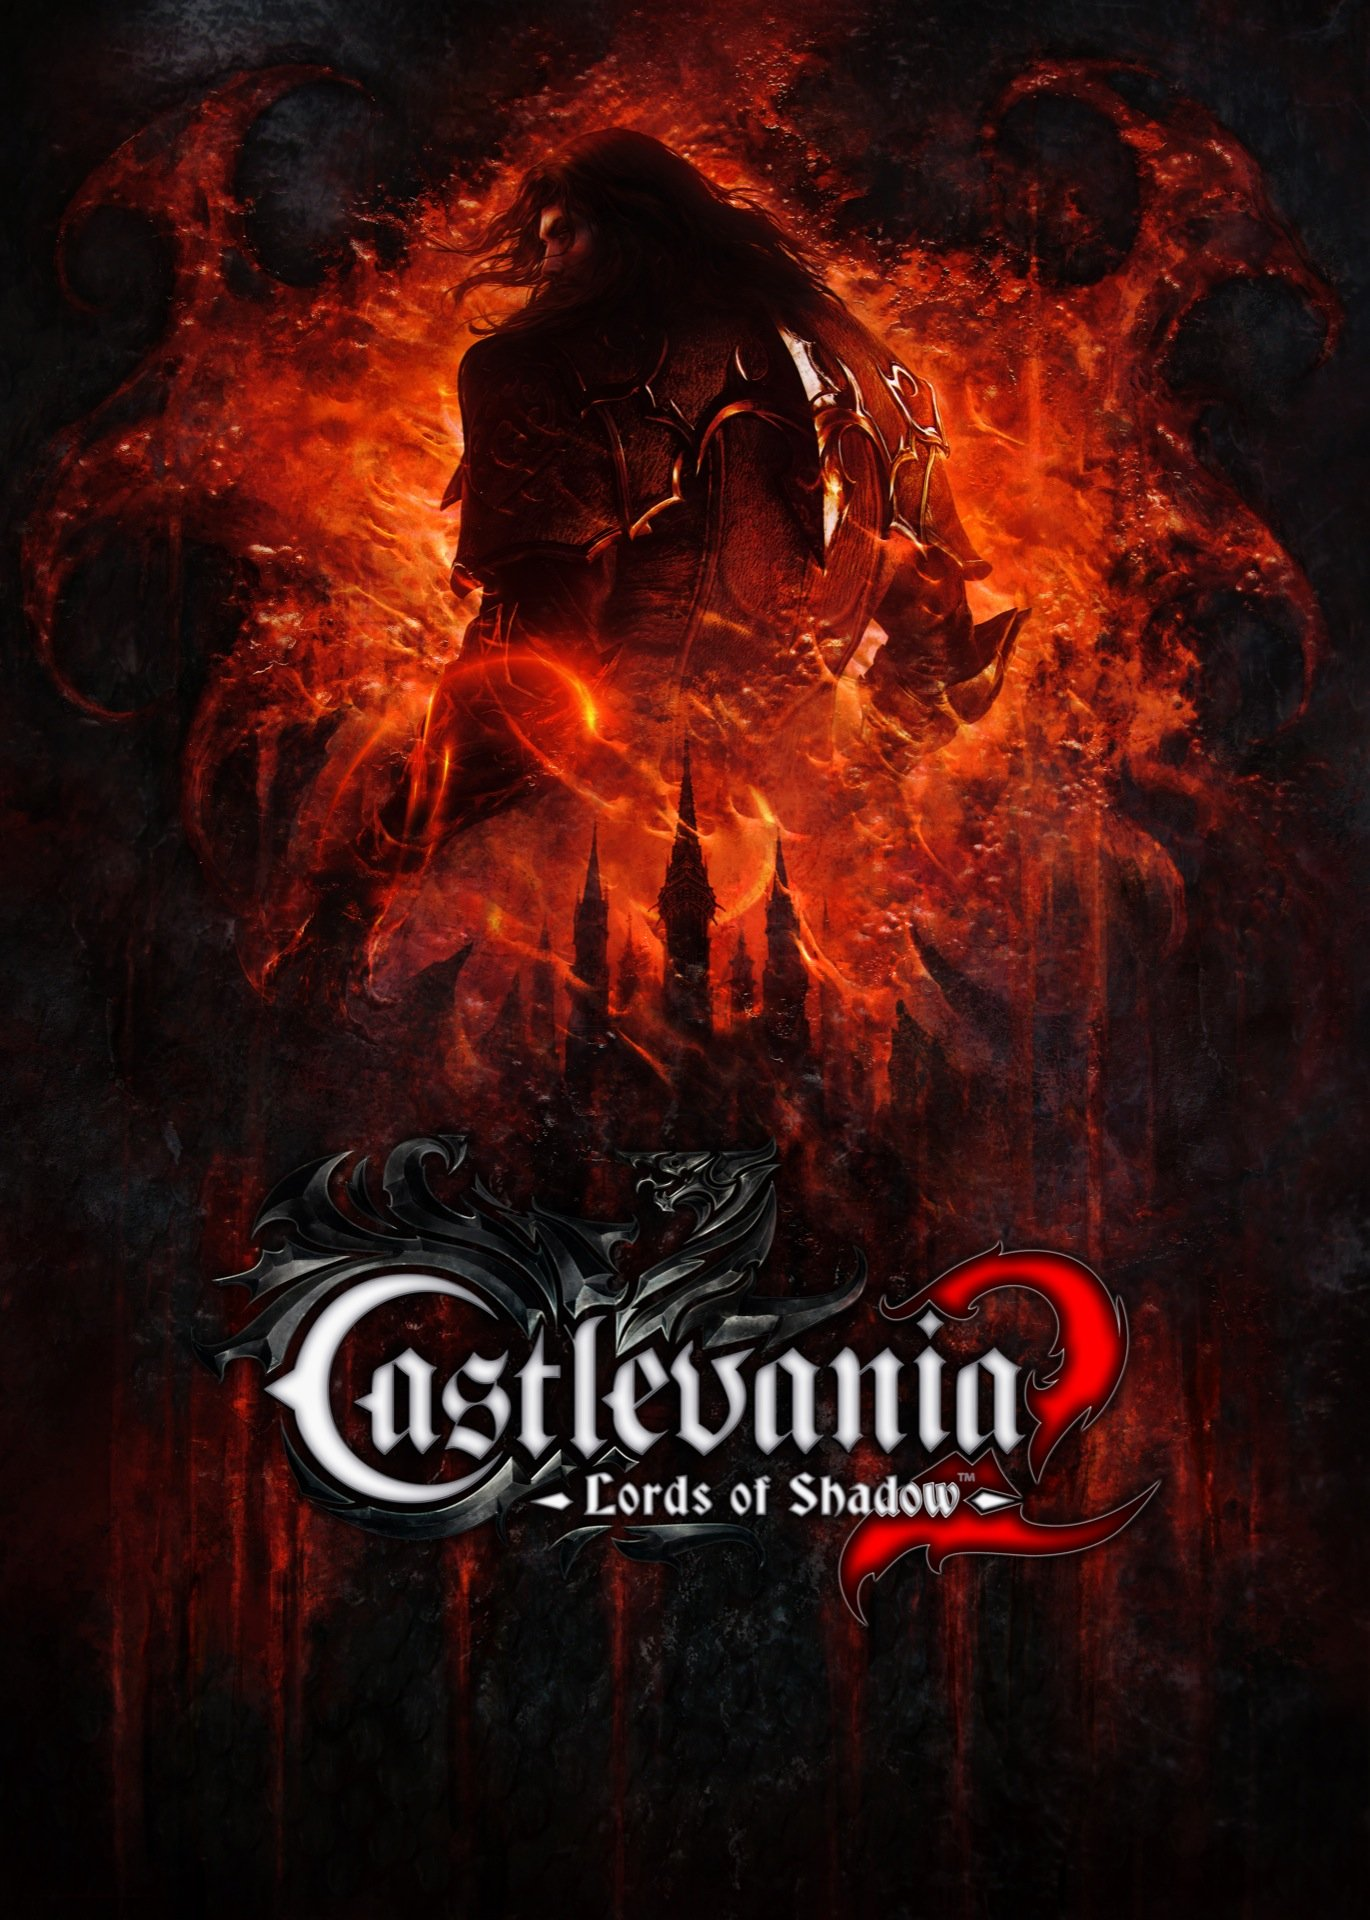 Castlevania - Lords of Shadow 2 (2014)